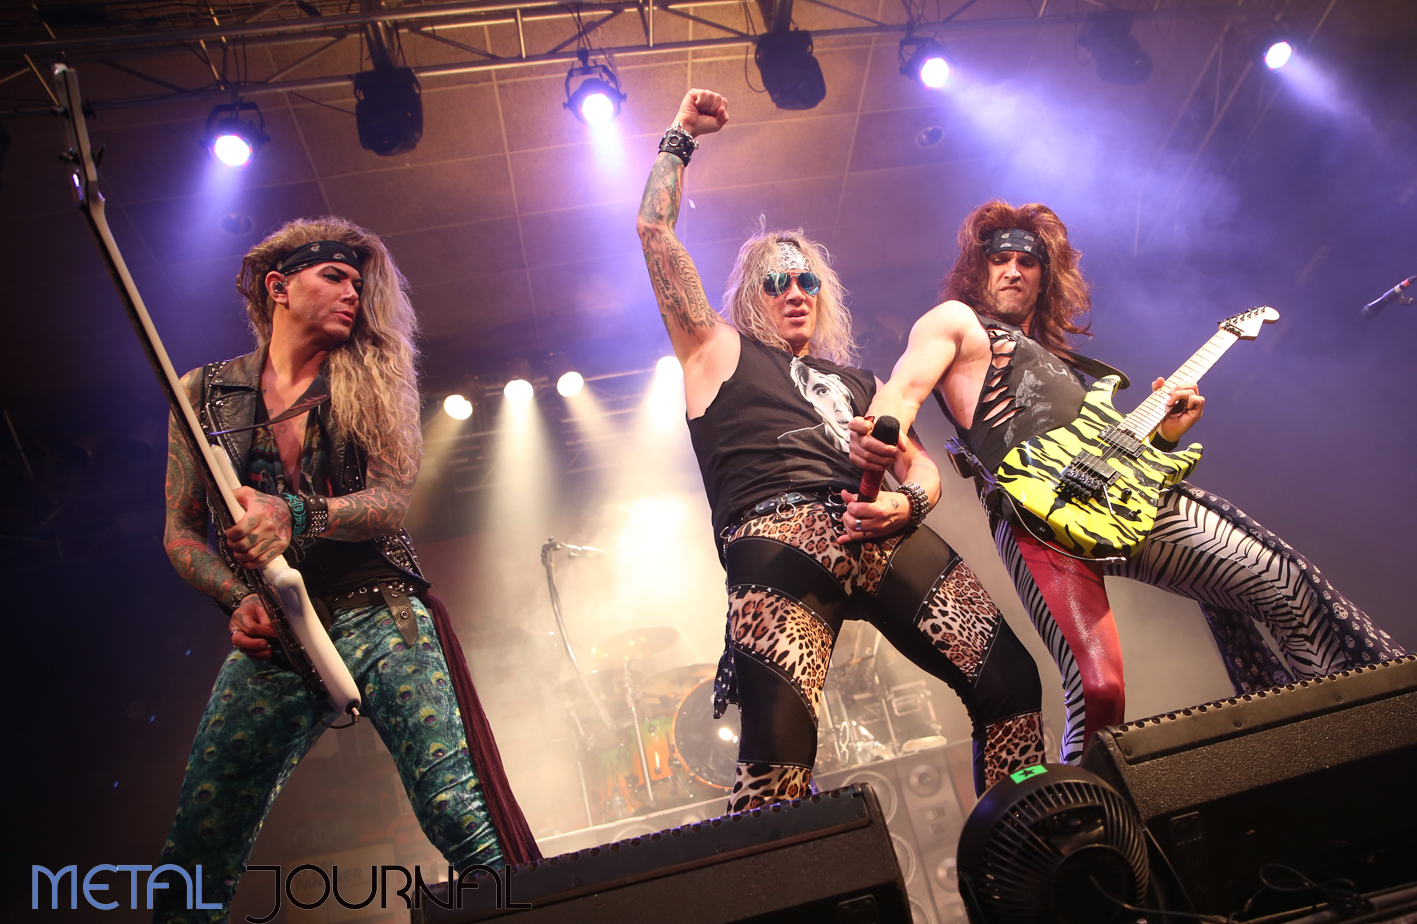 steel panther bilbao18 metal journal pic 6